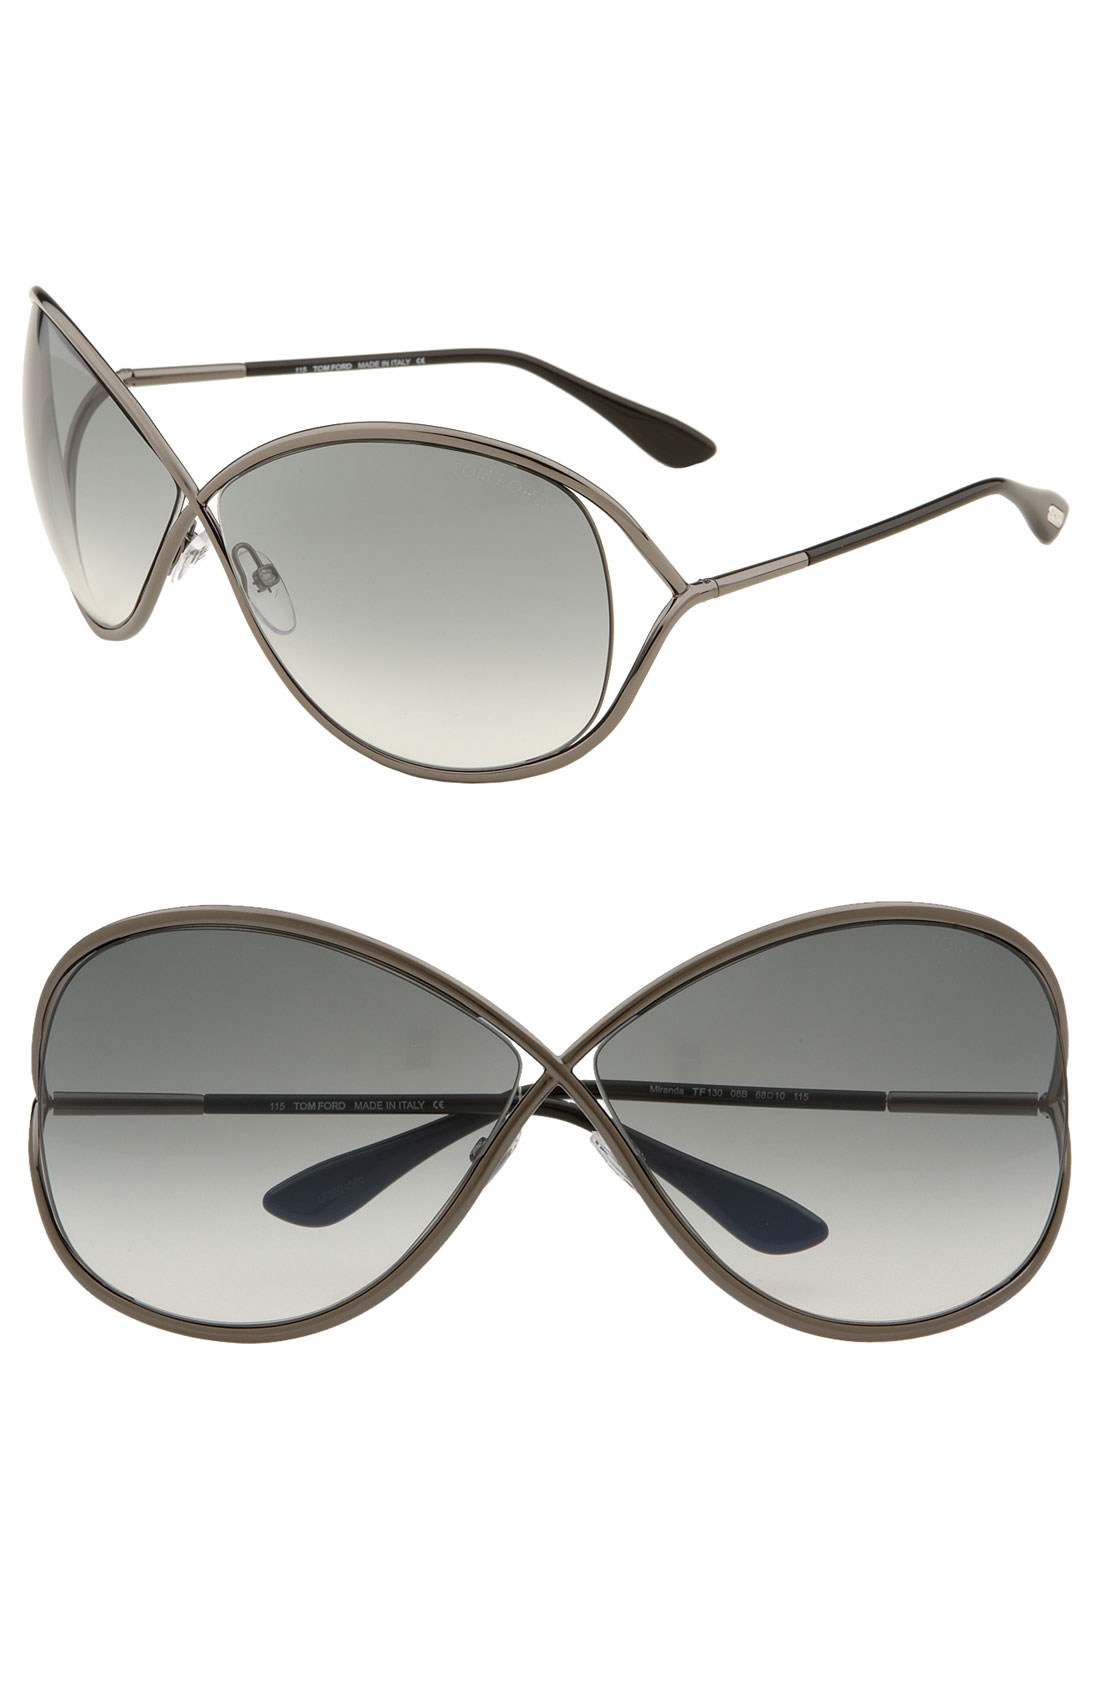 tom ford 39 miranda 39 68mm open temple metal sunglasses shiny gunmetal. Cars Review. Best American Auto & Cars Review